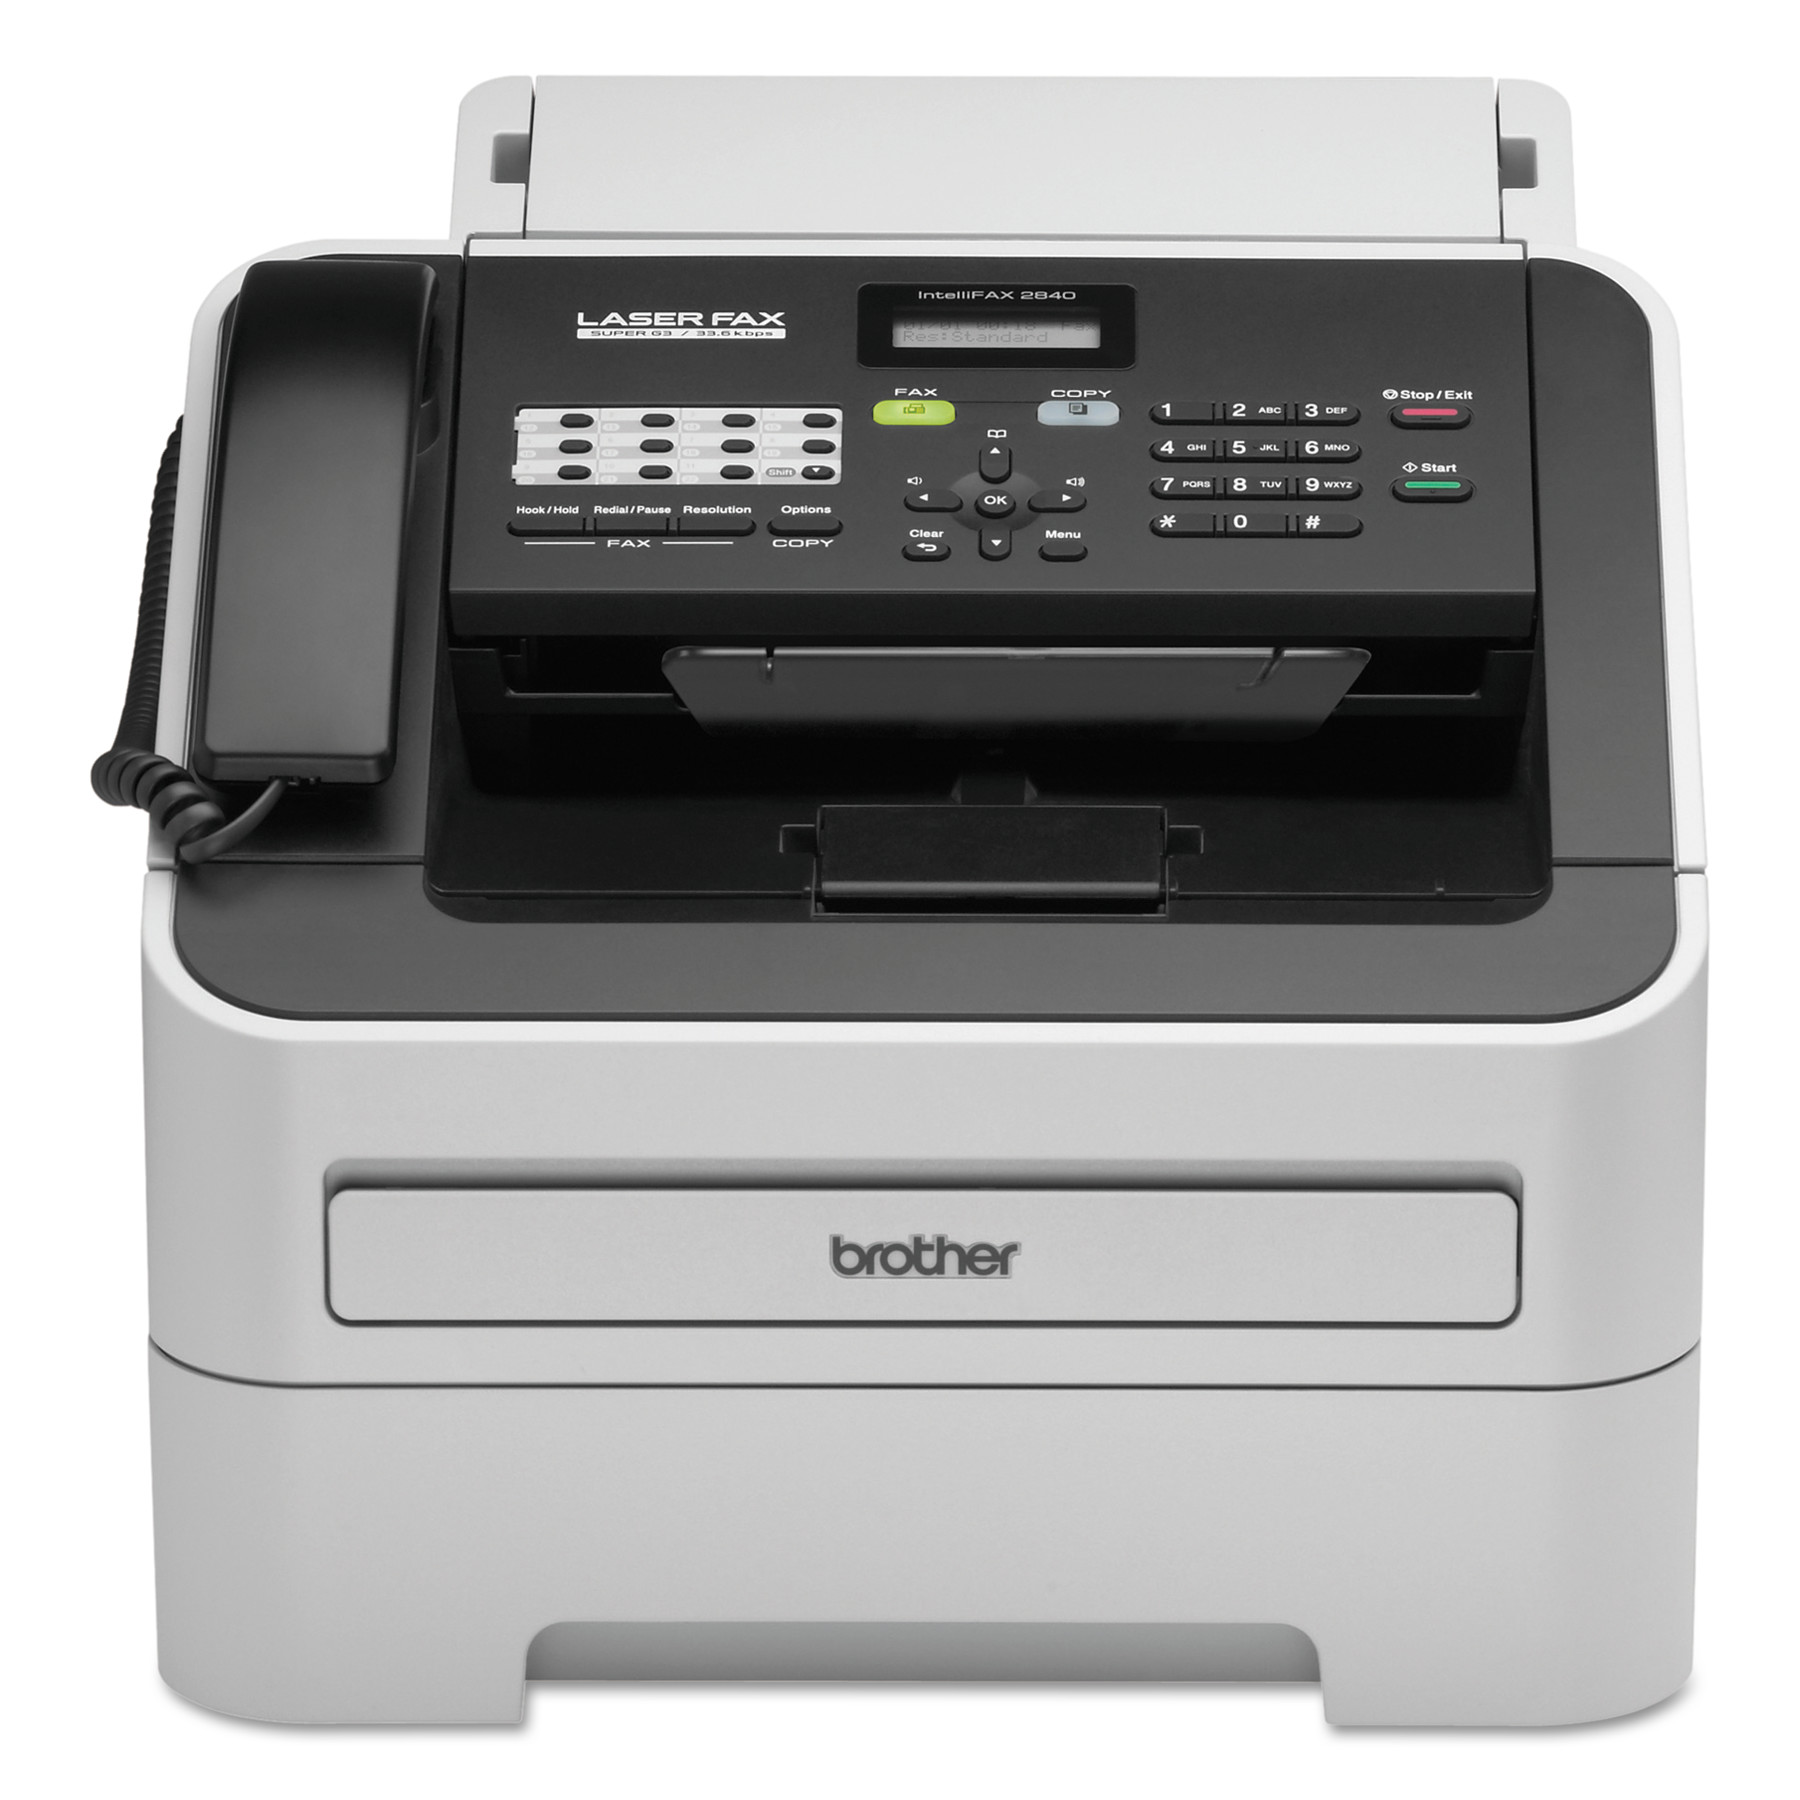 Brother intelliFAX-2840 Laser Fax Machine, Copy Fax Print by Brother